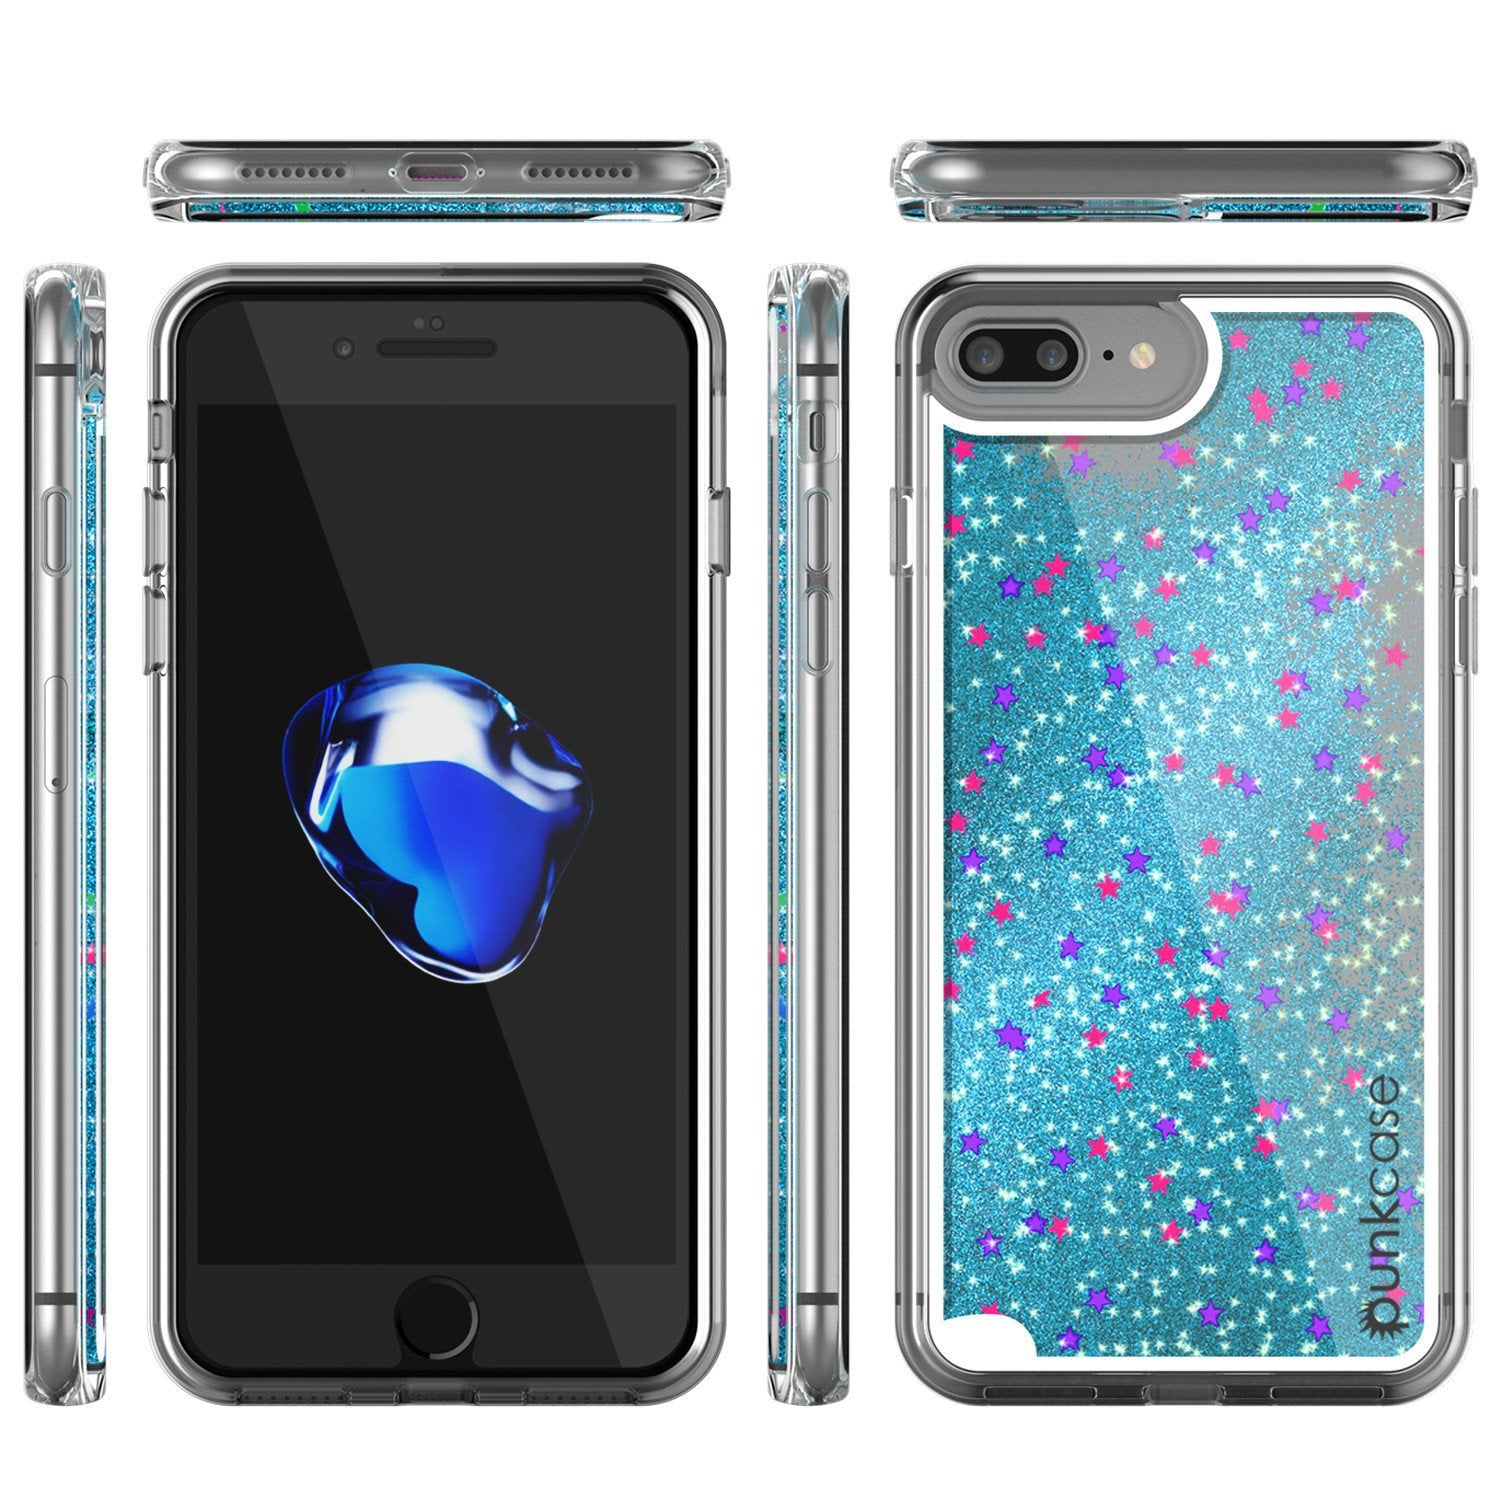 iPhone 7 Plus Case, Punkcase [Liquid Teal Series] Protective Dual Layer Floating Glitter Cover with lots of Bling & Sparkle + 0.3mm Tempered Glass Screen Protector for Apple iPhone 7s Plus